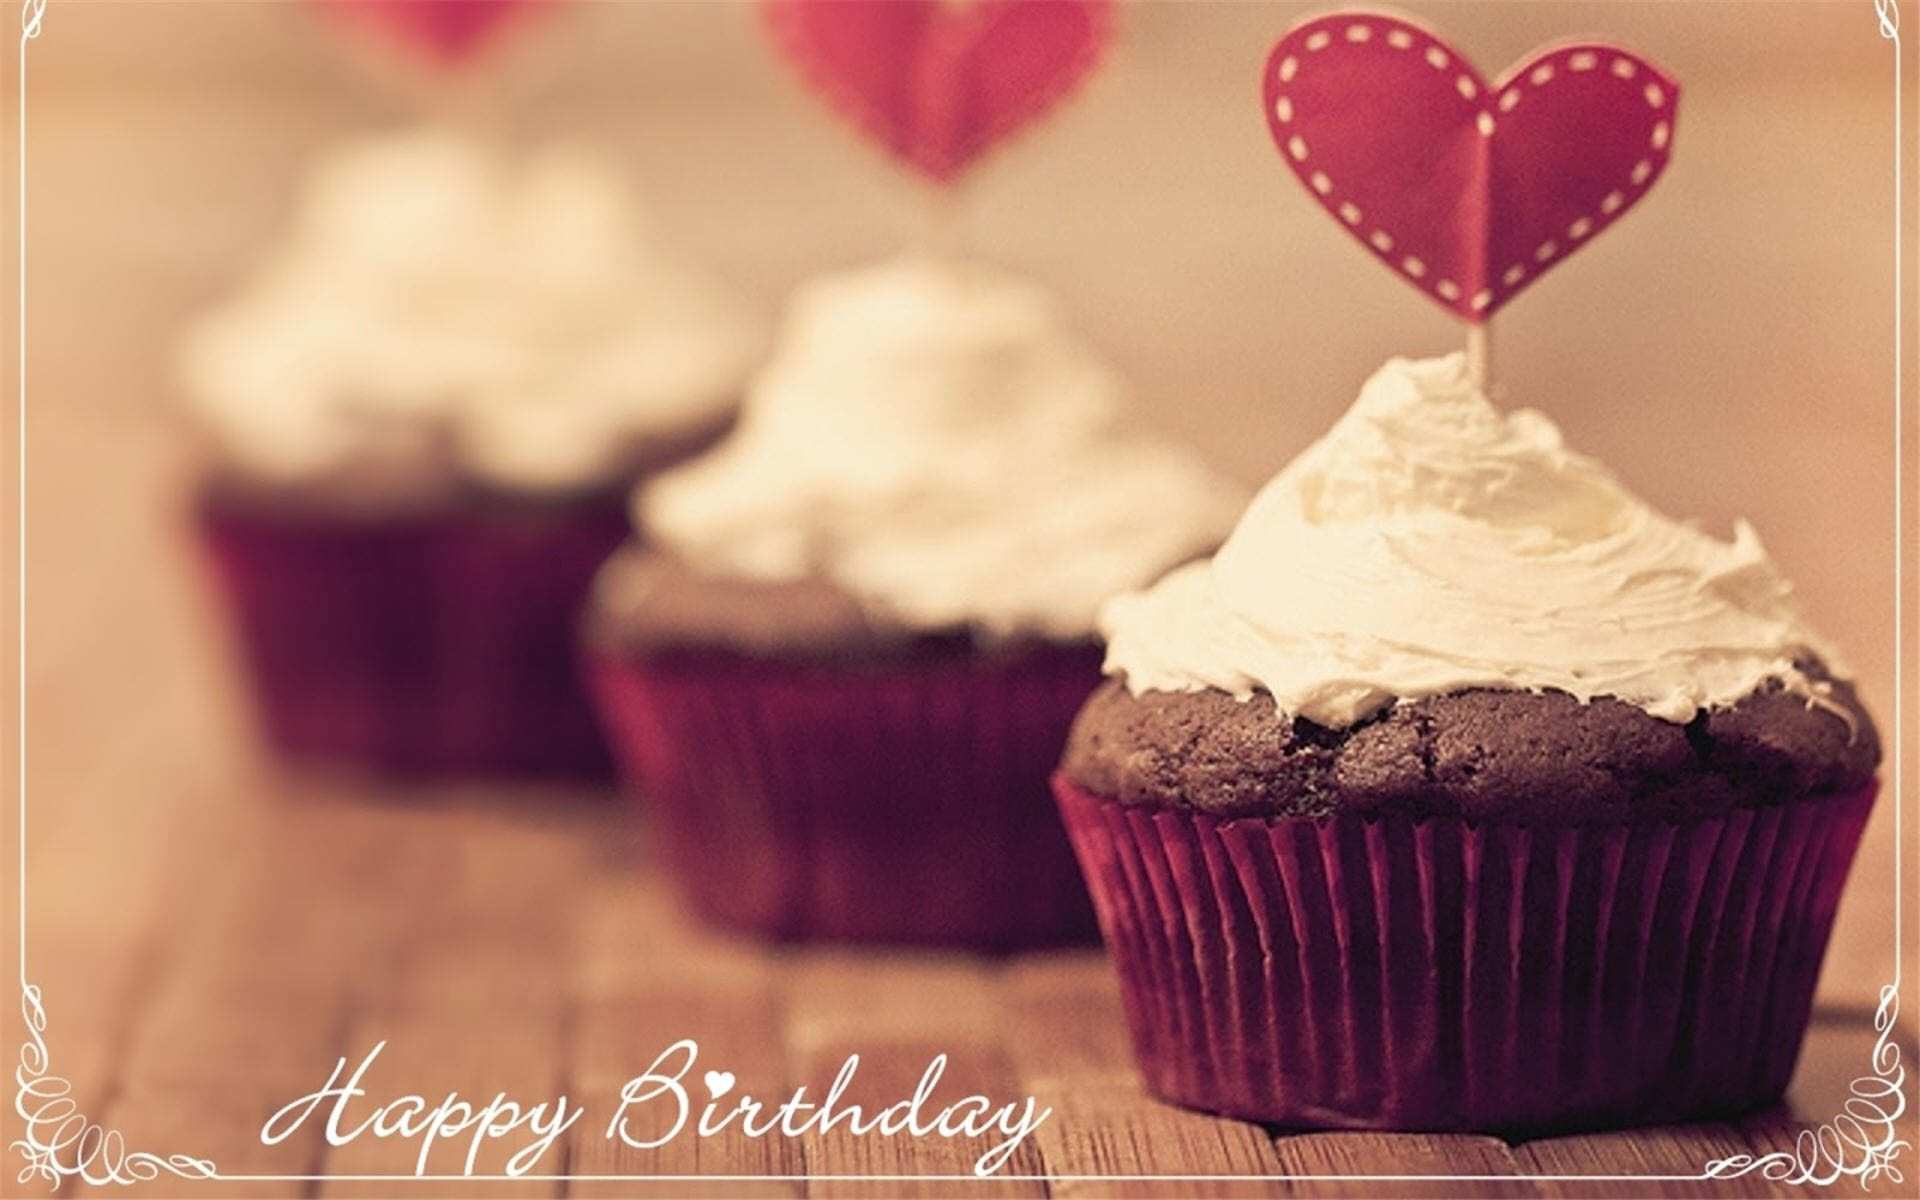 1403887770_happy_birthday_wishes_hd_wallpaper